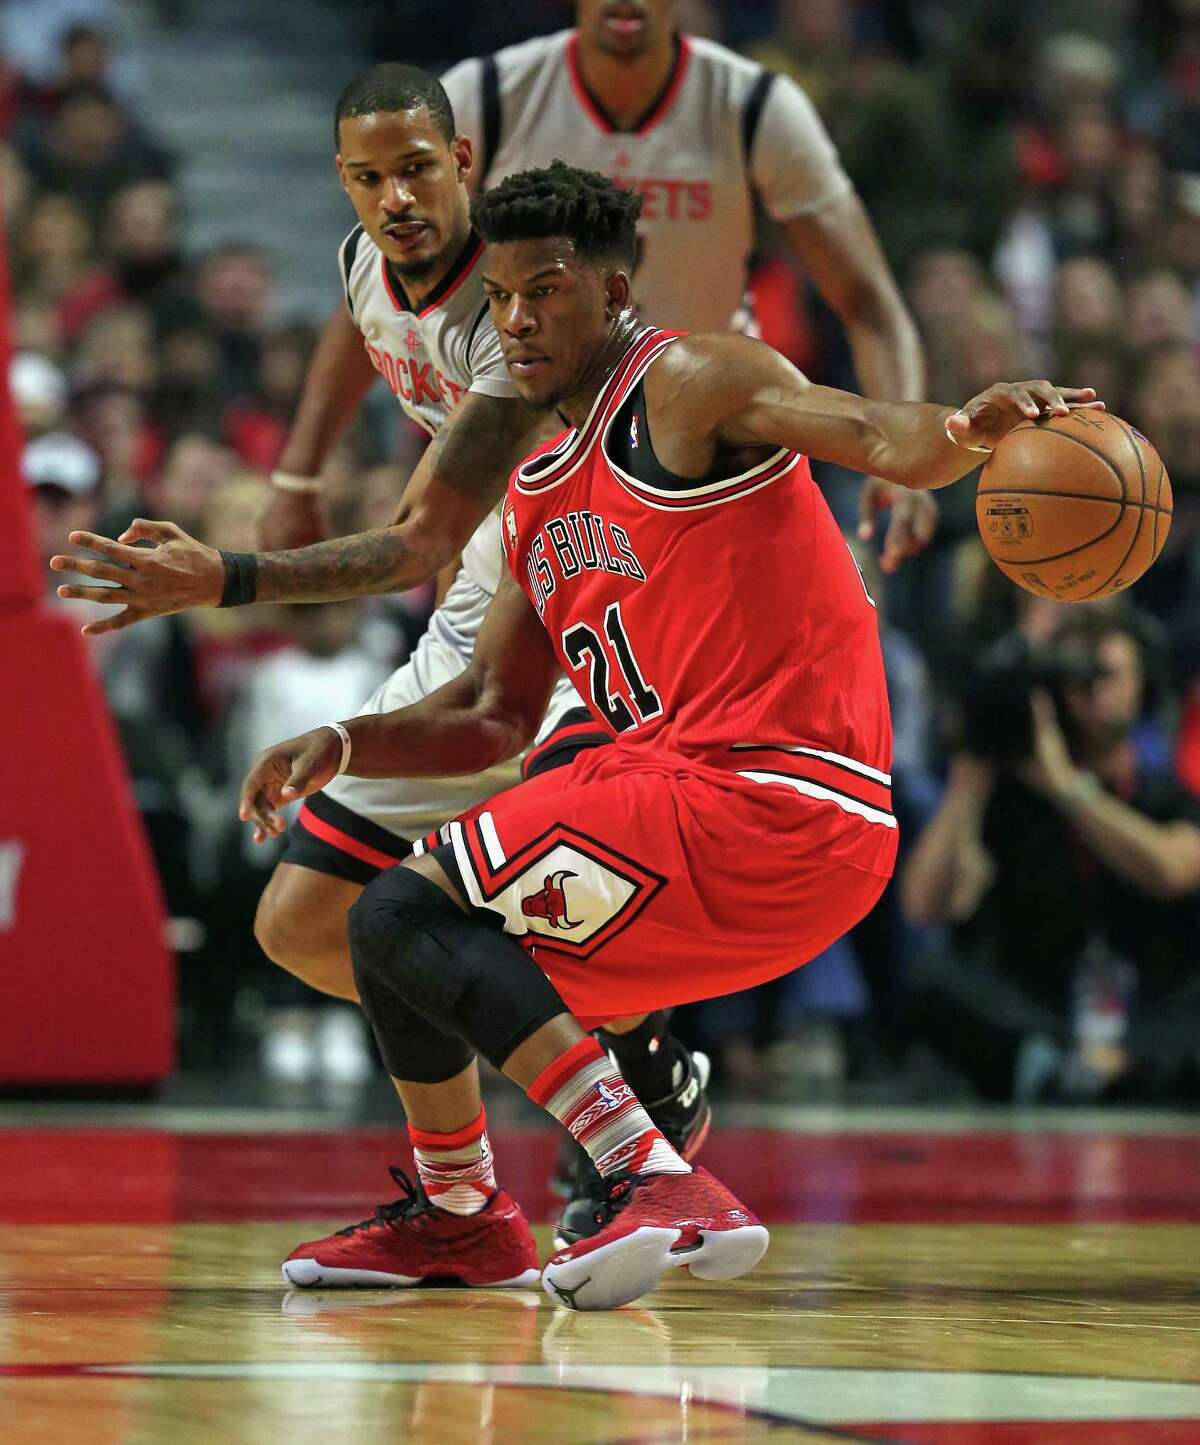 CHICAGO, IL - MARCH 05: Jimmy Butler #21 of the Chicago Bulls moves against Trevor Ariza #1 of the Houston Rockets at the United Center on March 5, 2016 in Chicago, Illinois. NOTE TO USER: User expressly acknowledges and agrees that, by downloading and or using the photograph, User is consenting to the terms and conditions of the Getty Images License Agreement.